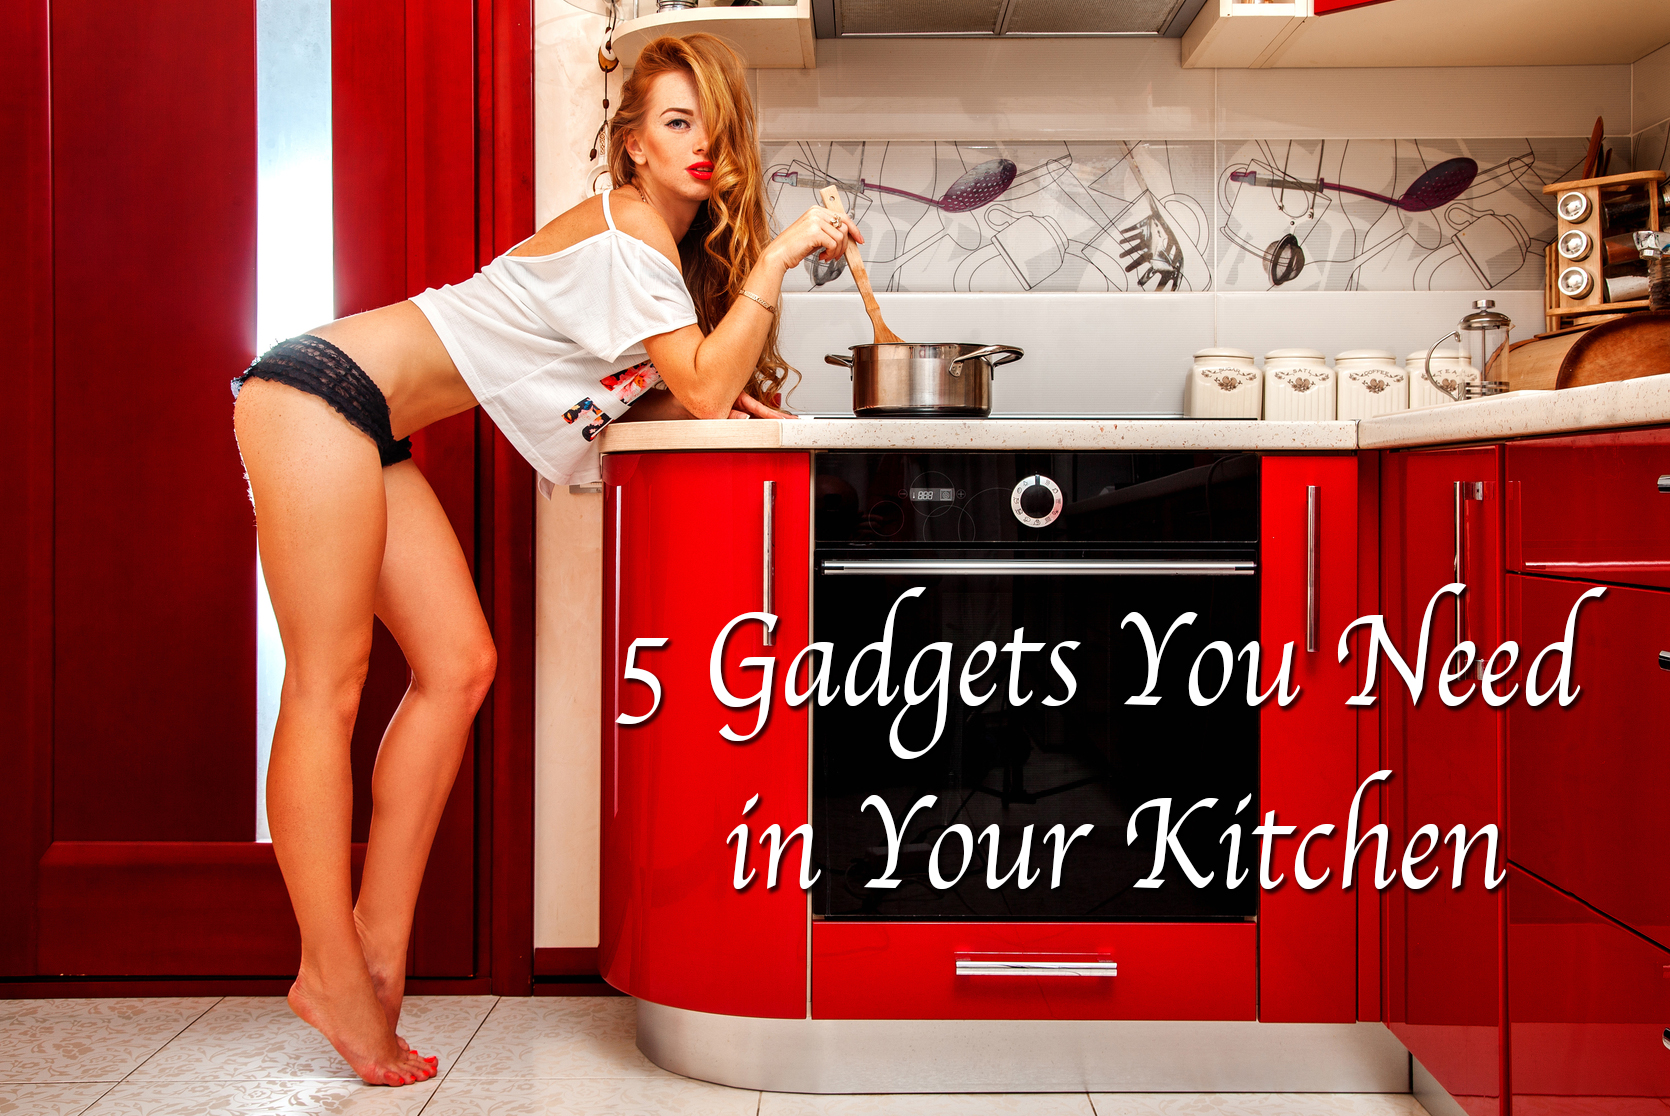 5 Gadgets to Classy up Your Kitchen